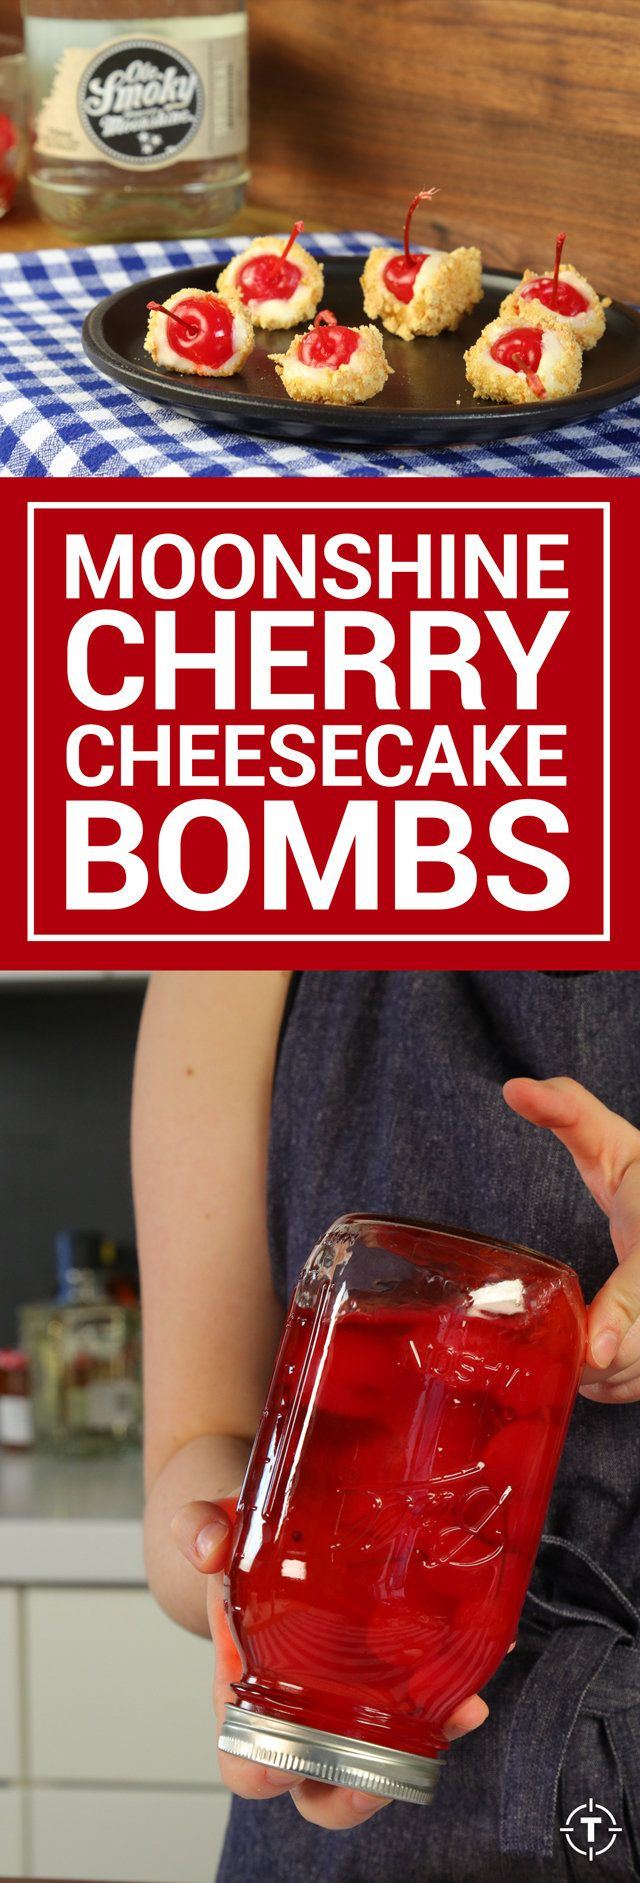 How to Make Moonshine-Infused Cherry Cheesecake Bombs